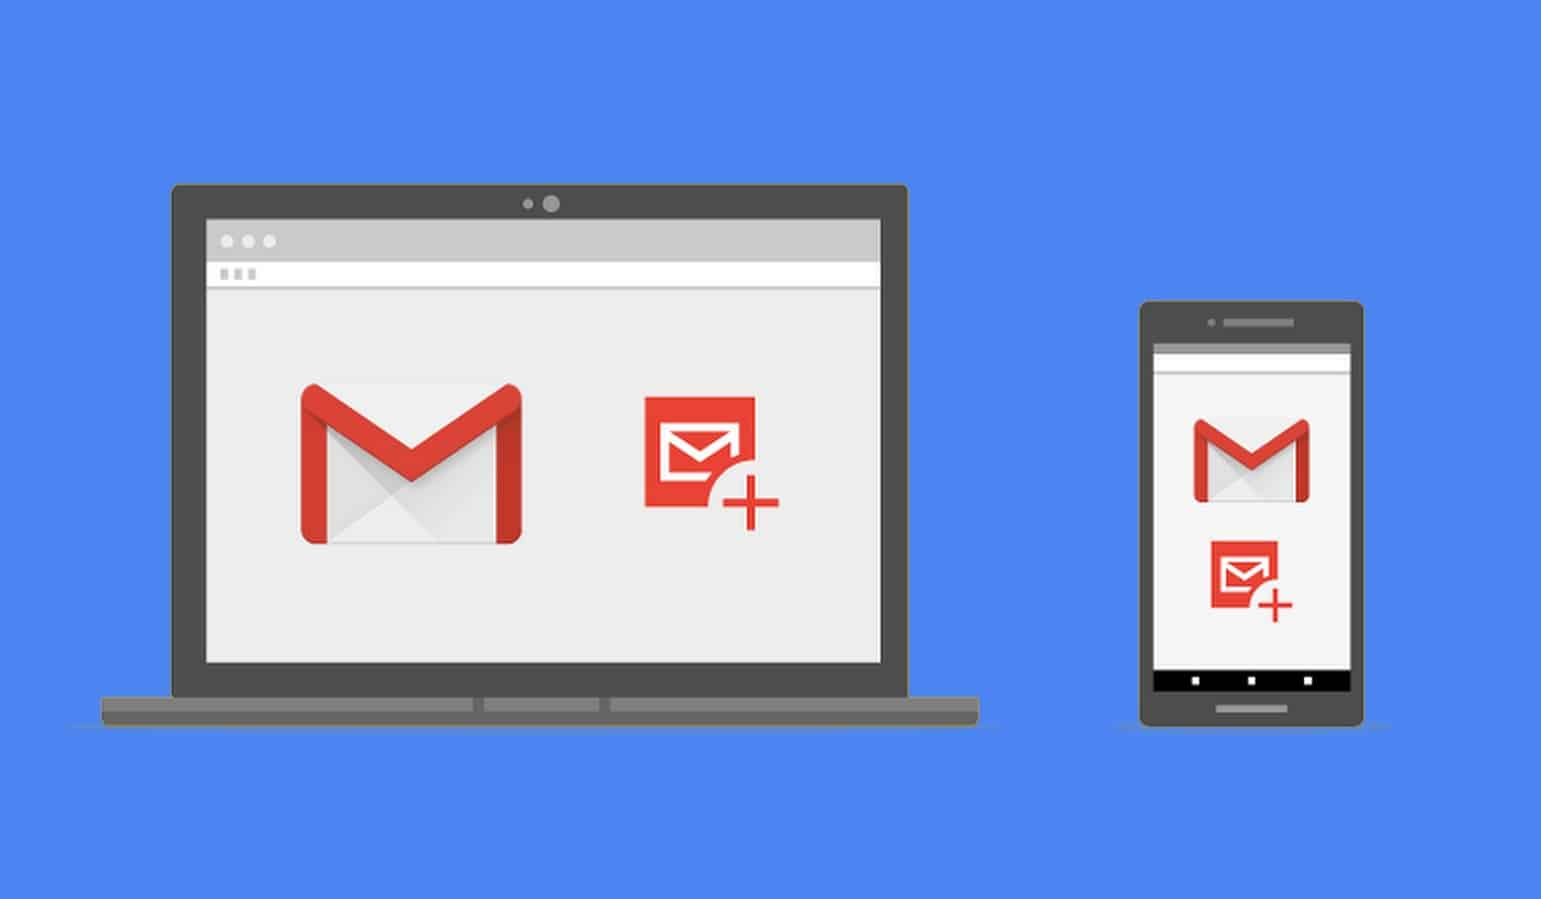 amp for gmail shown on blue background